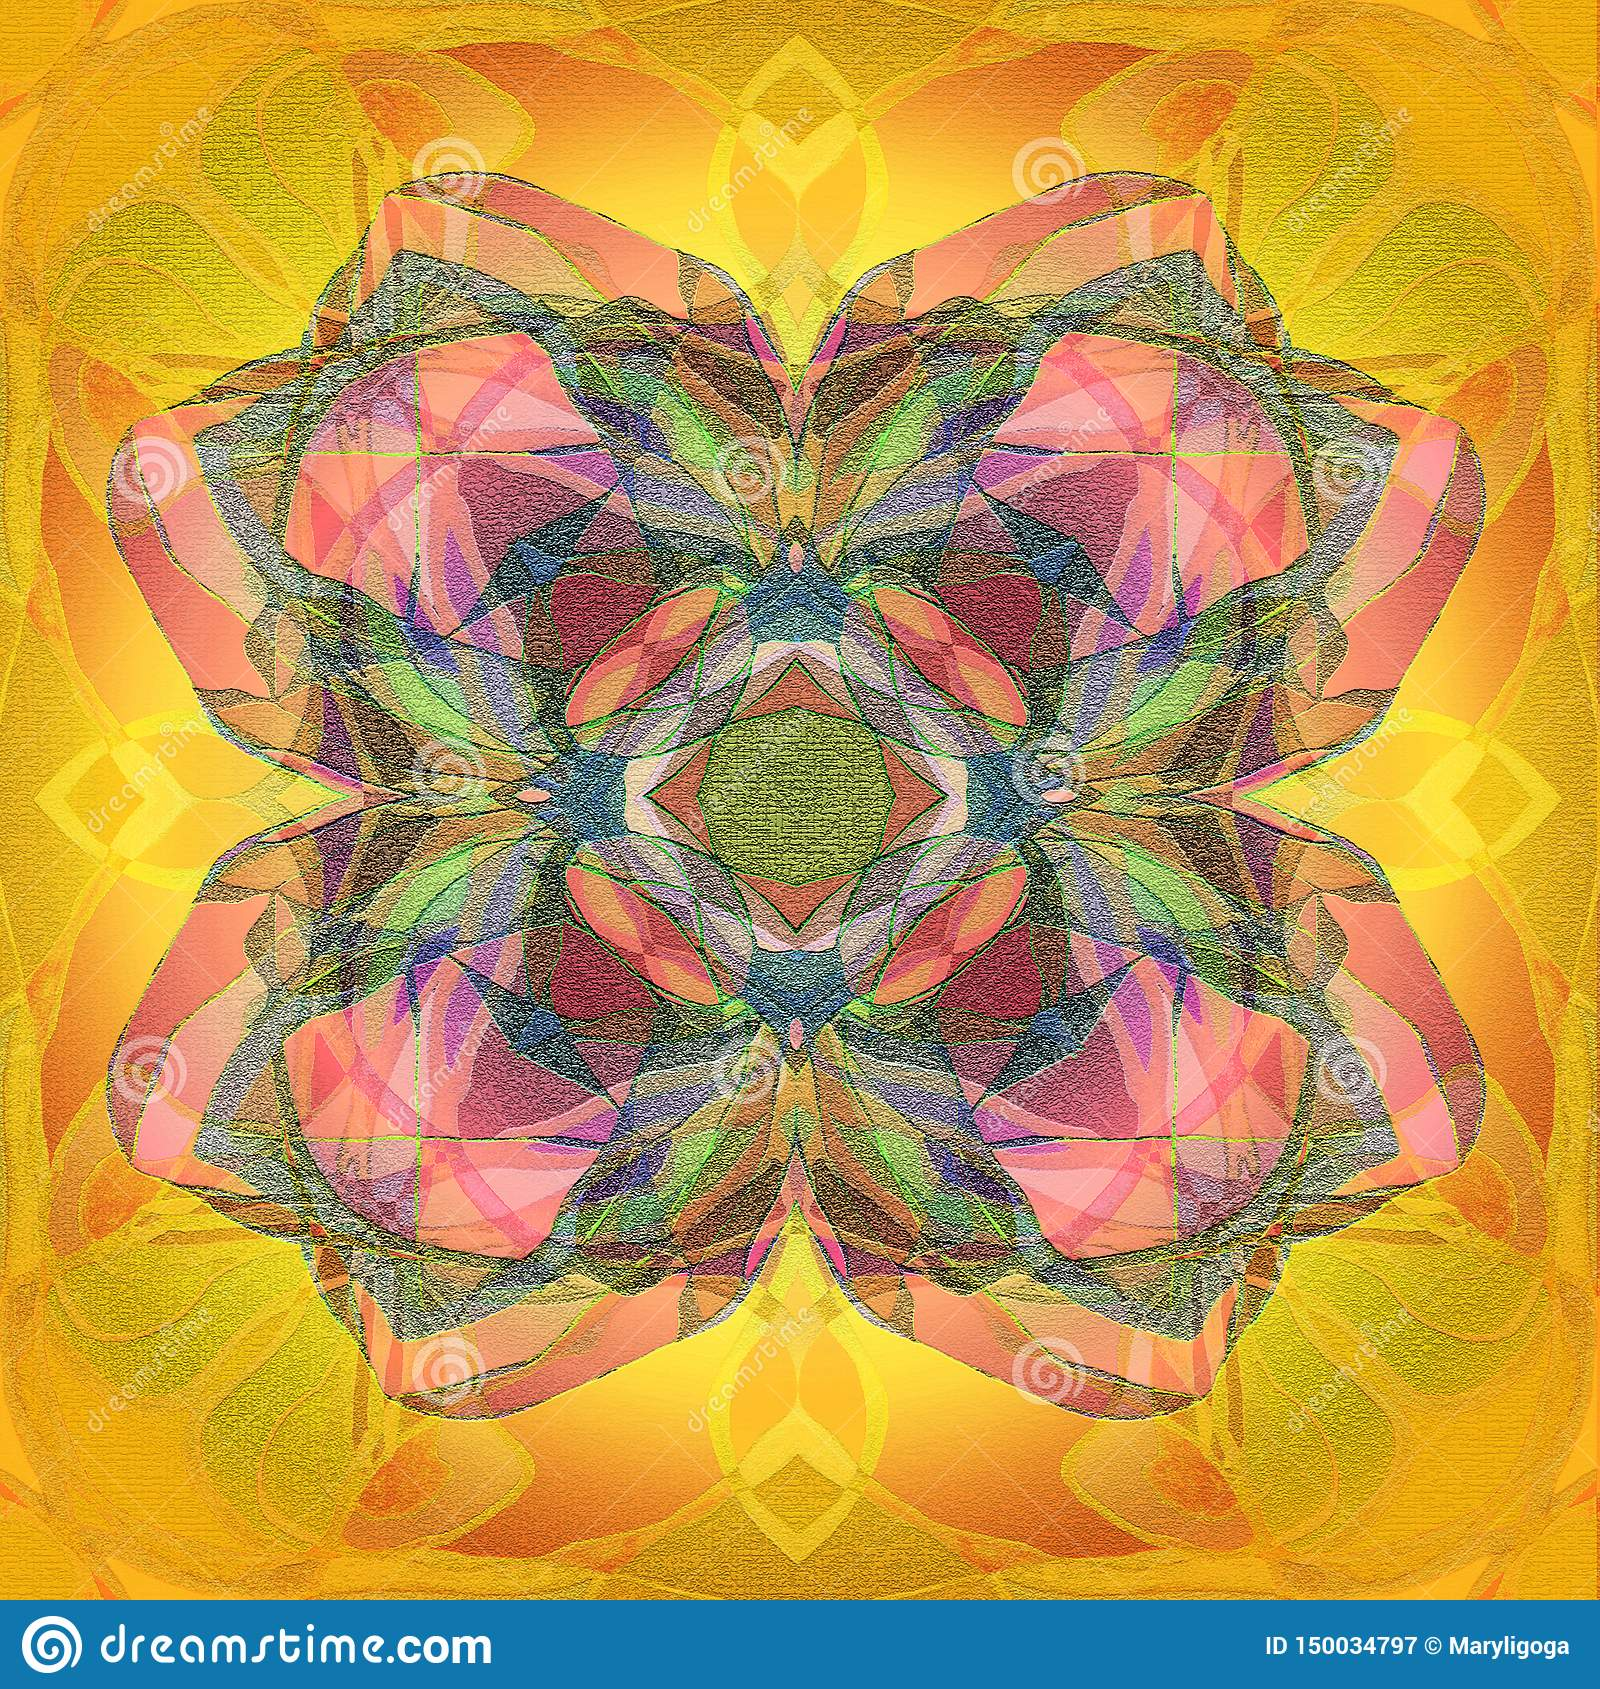 MANDALA CENTRAL CLOVER, TEXTURED IMAGE IN YELLOW, GOLD, PINK, BLUE